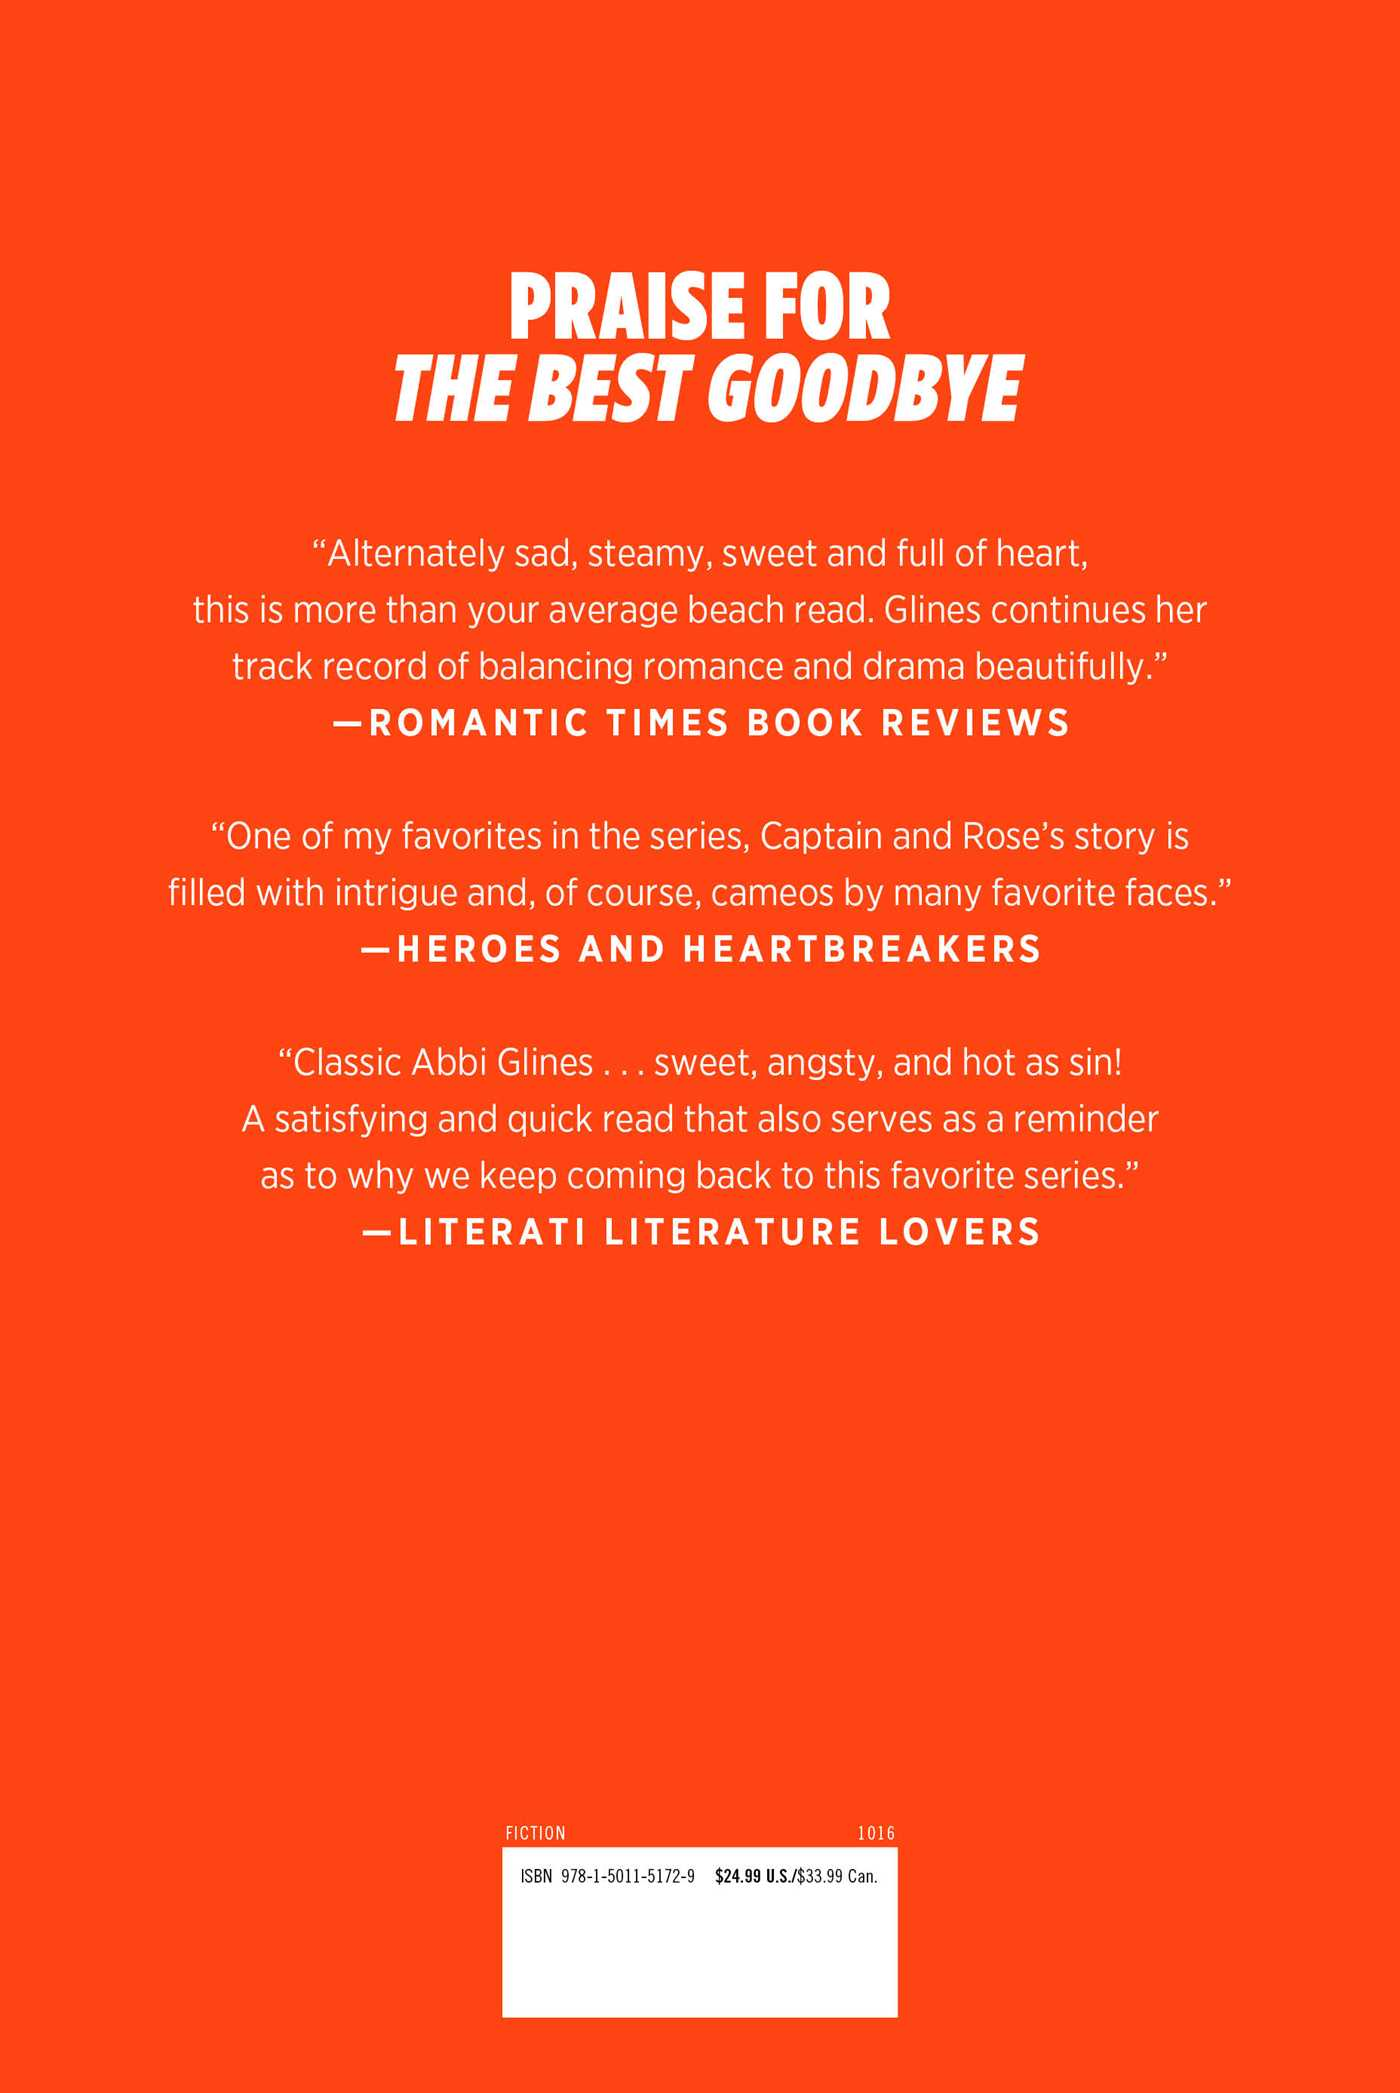 The best goodbye 9781501151729 hr back